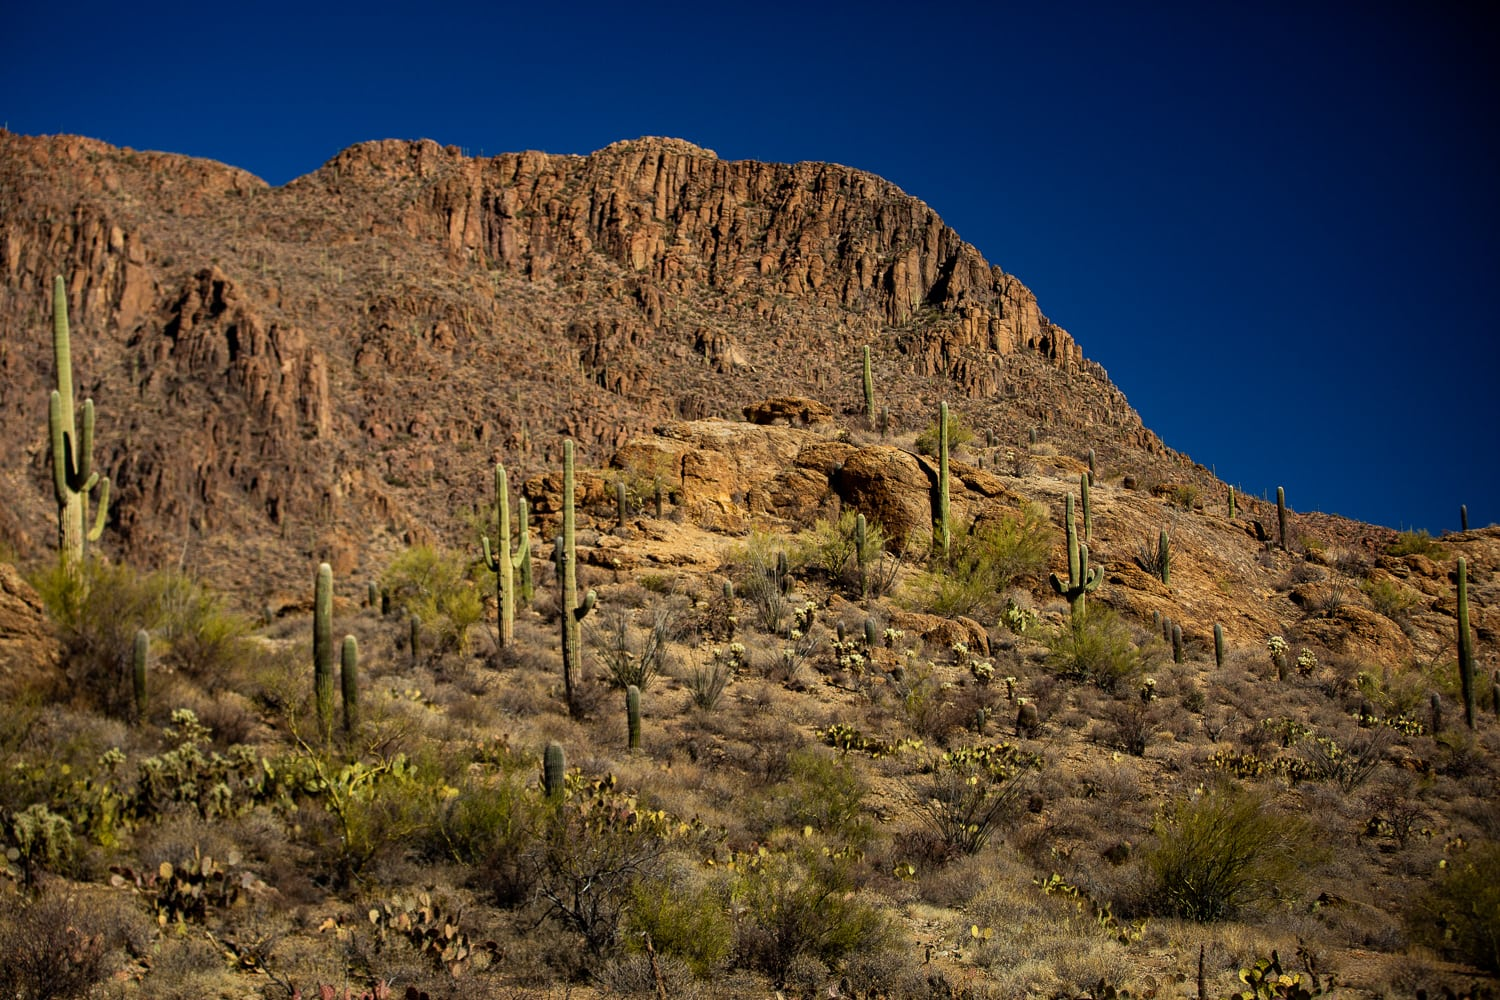 A landscape photo of Saguaro cactuses in Tucson Mountain Park against a blue sky.